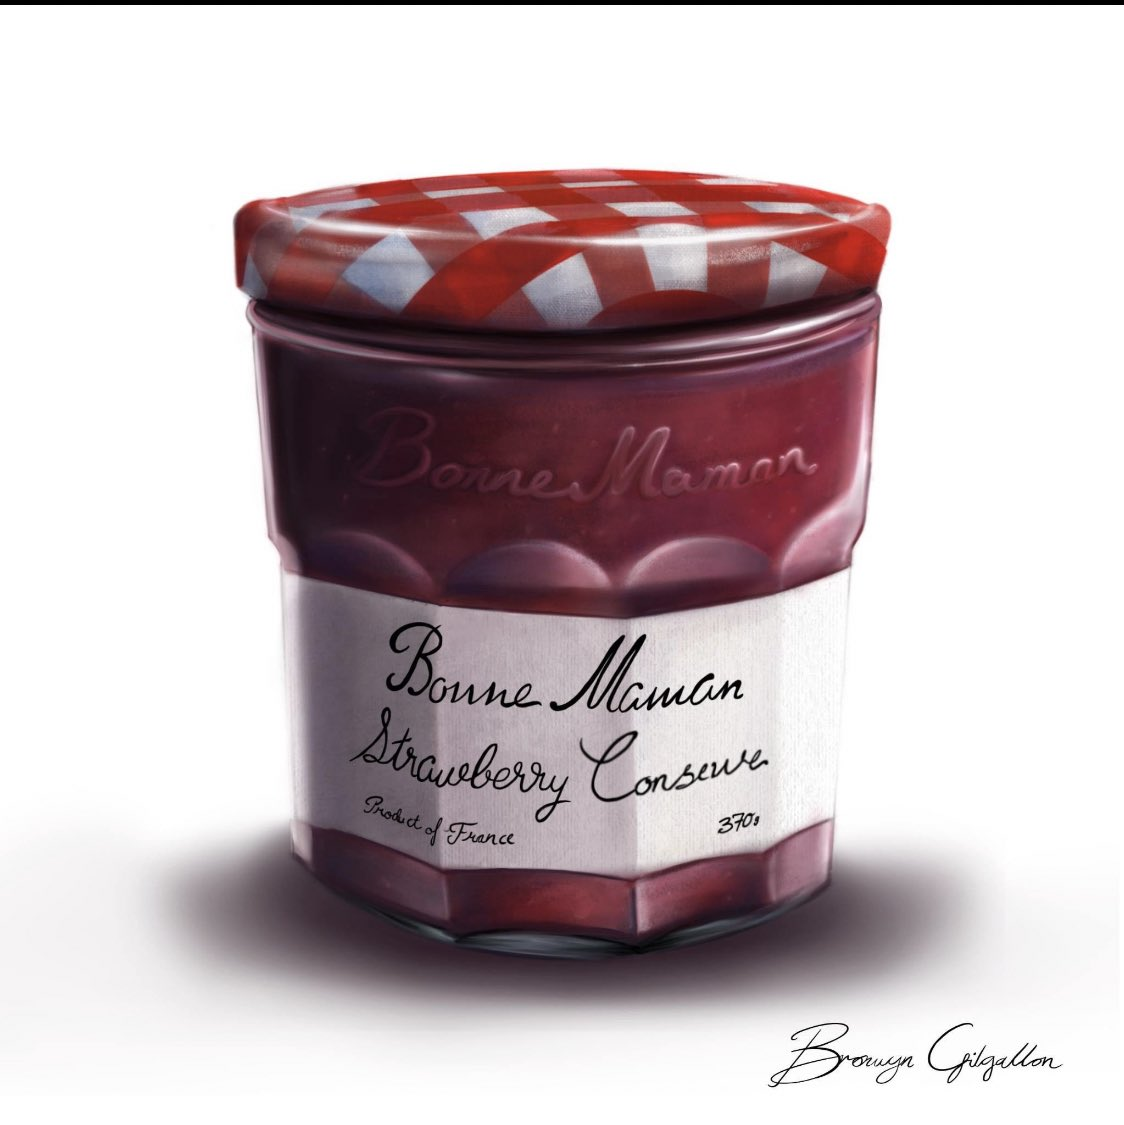 "A thread. About Bonne Maman jam. The incident took place in a supermarket in New Jersey. ""At the supermarket today, I found a small, elderly woman standing in front of a high shelf holding Bonne Maman preserves. She was having trouble finding the flavour she wanted..."